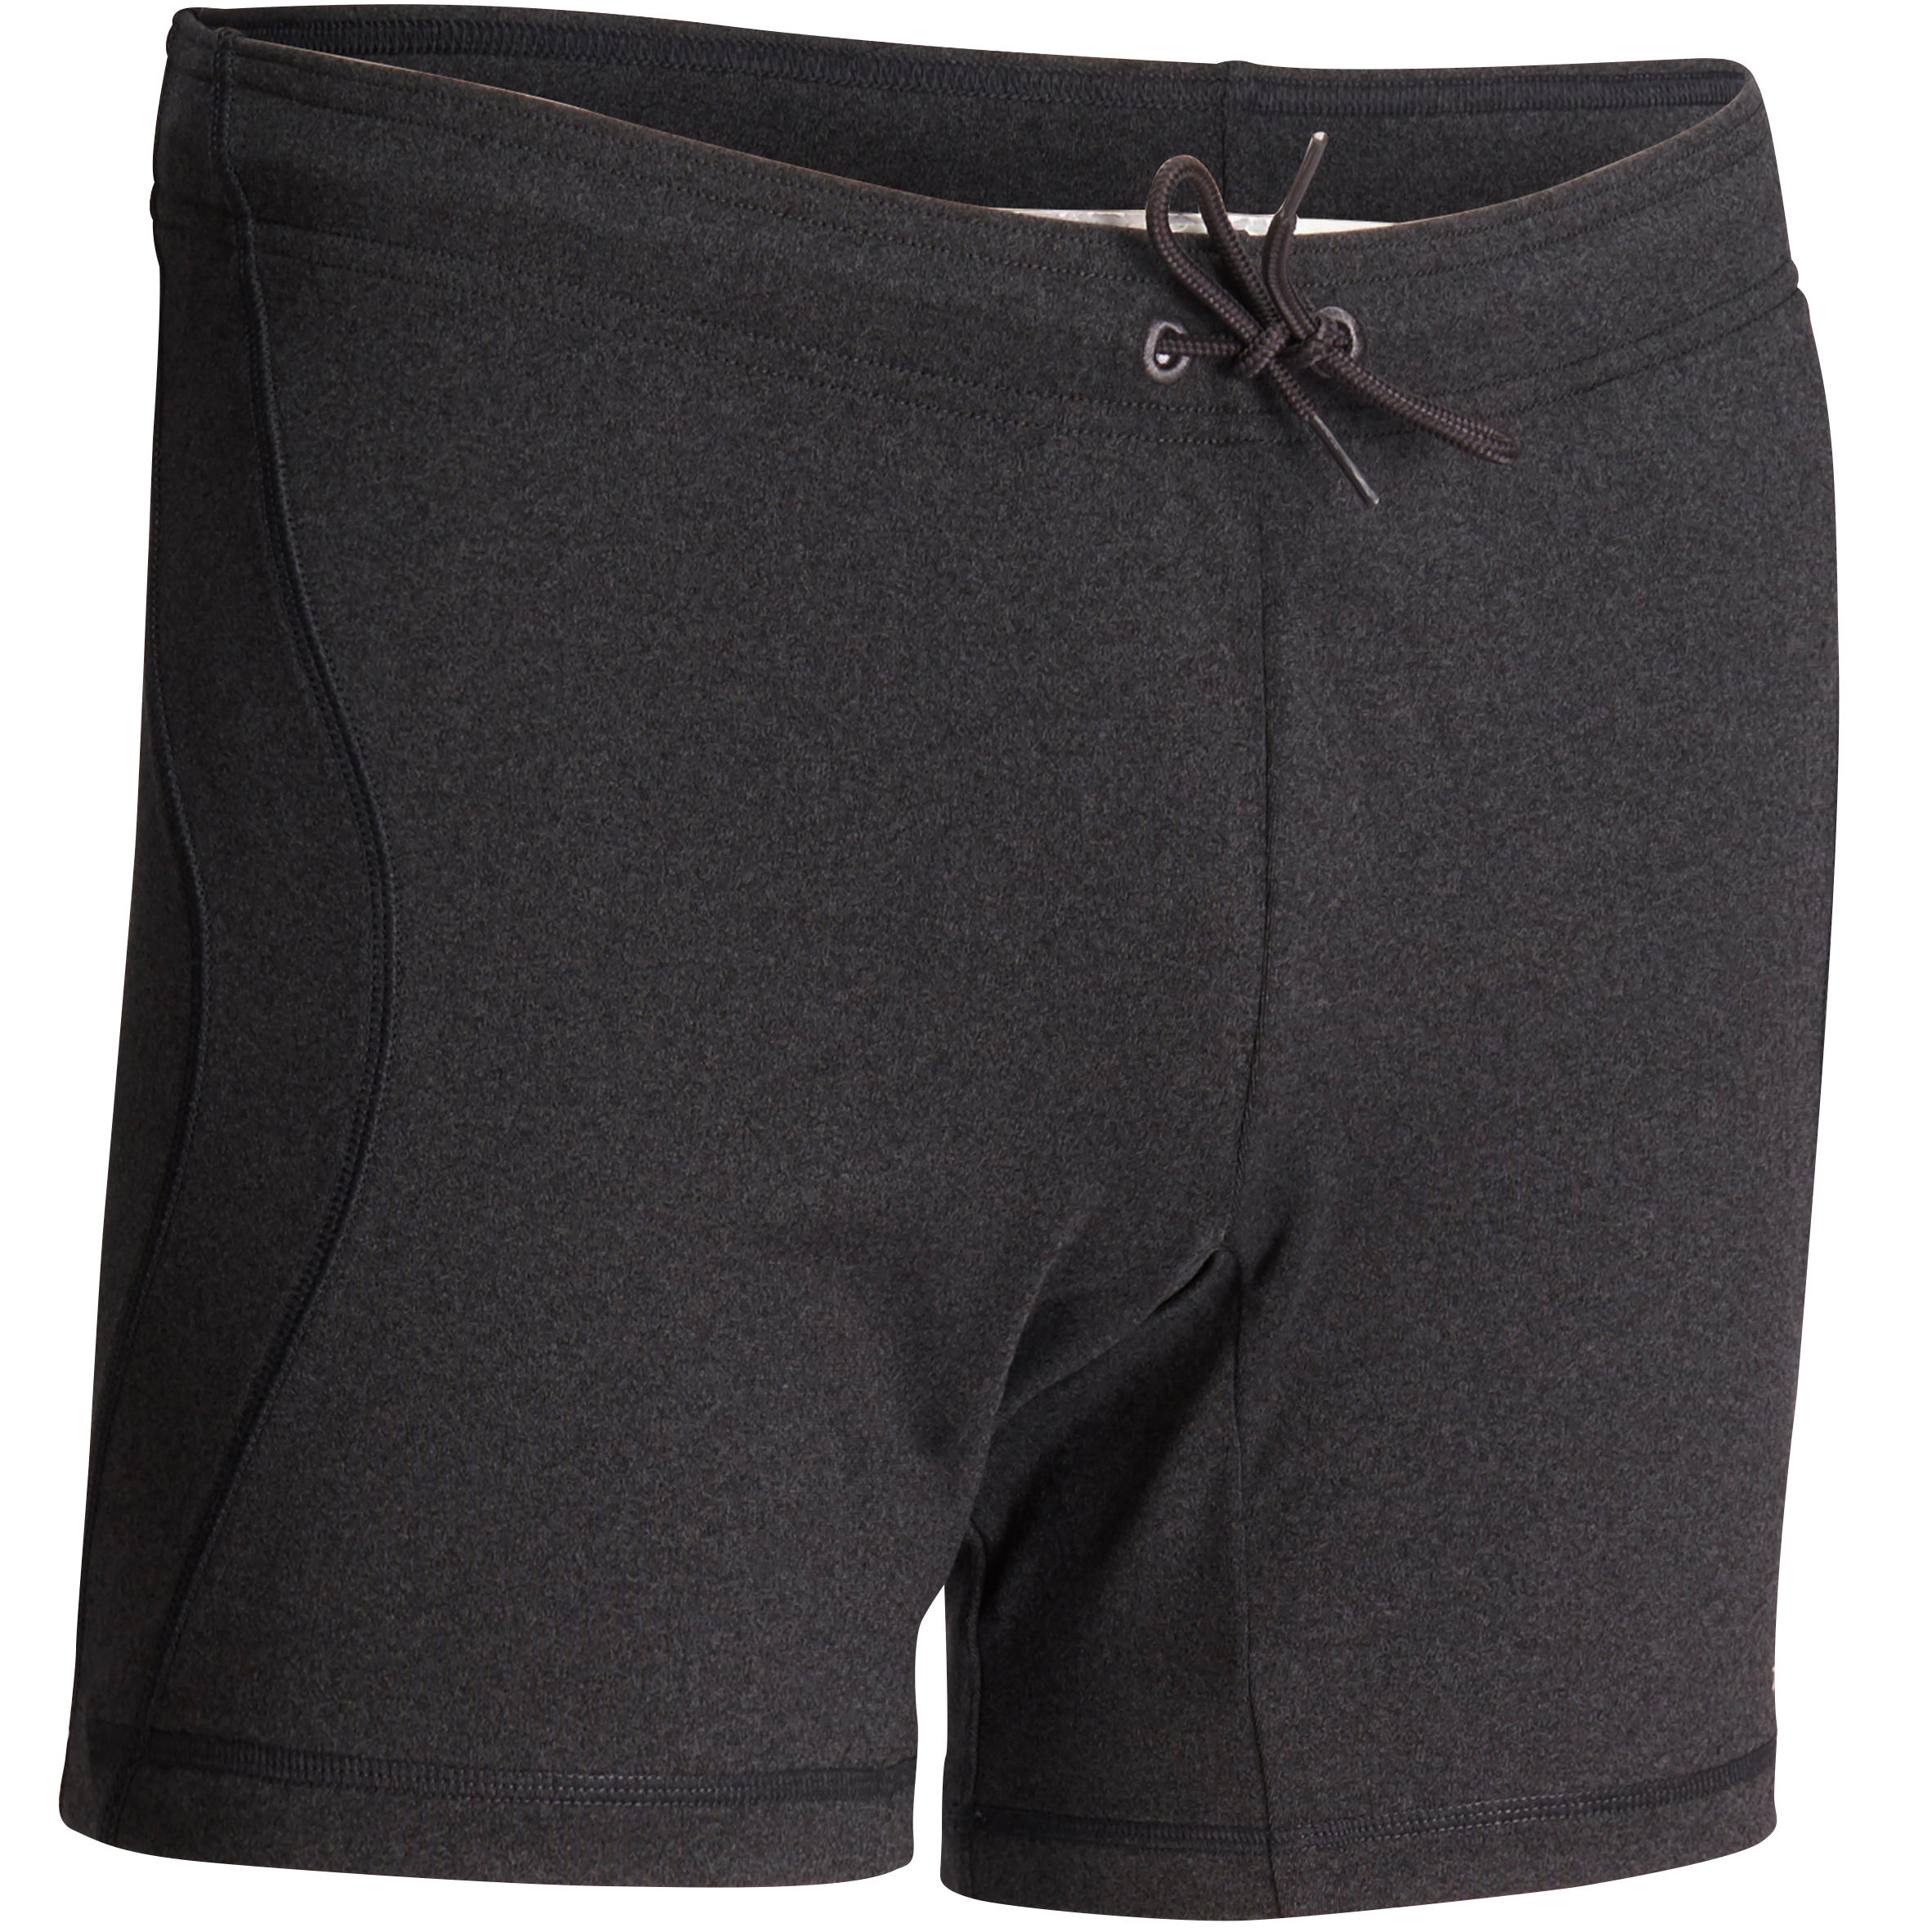 Hot Yoga Shorts - Dark Grey